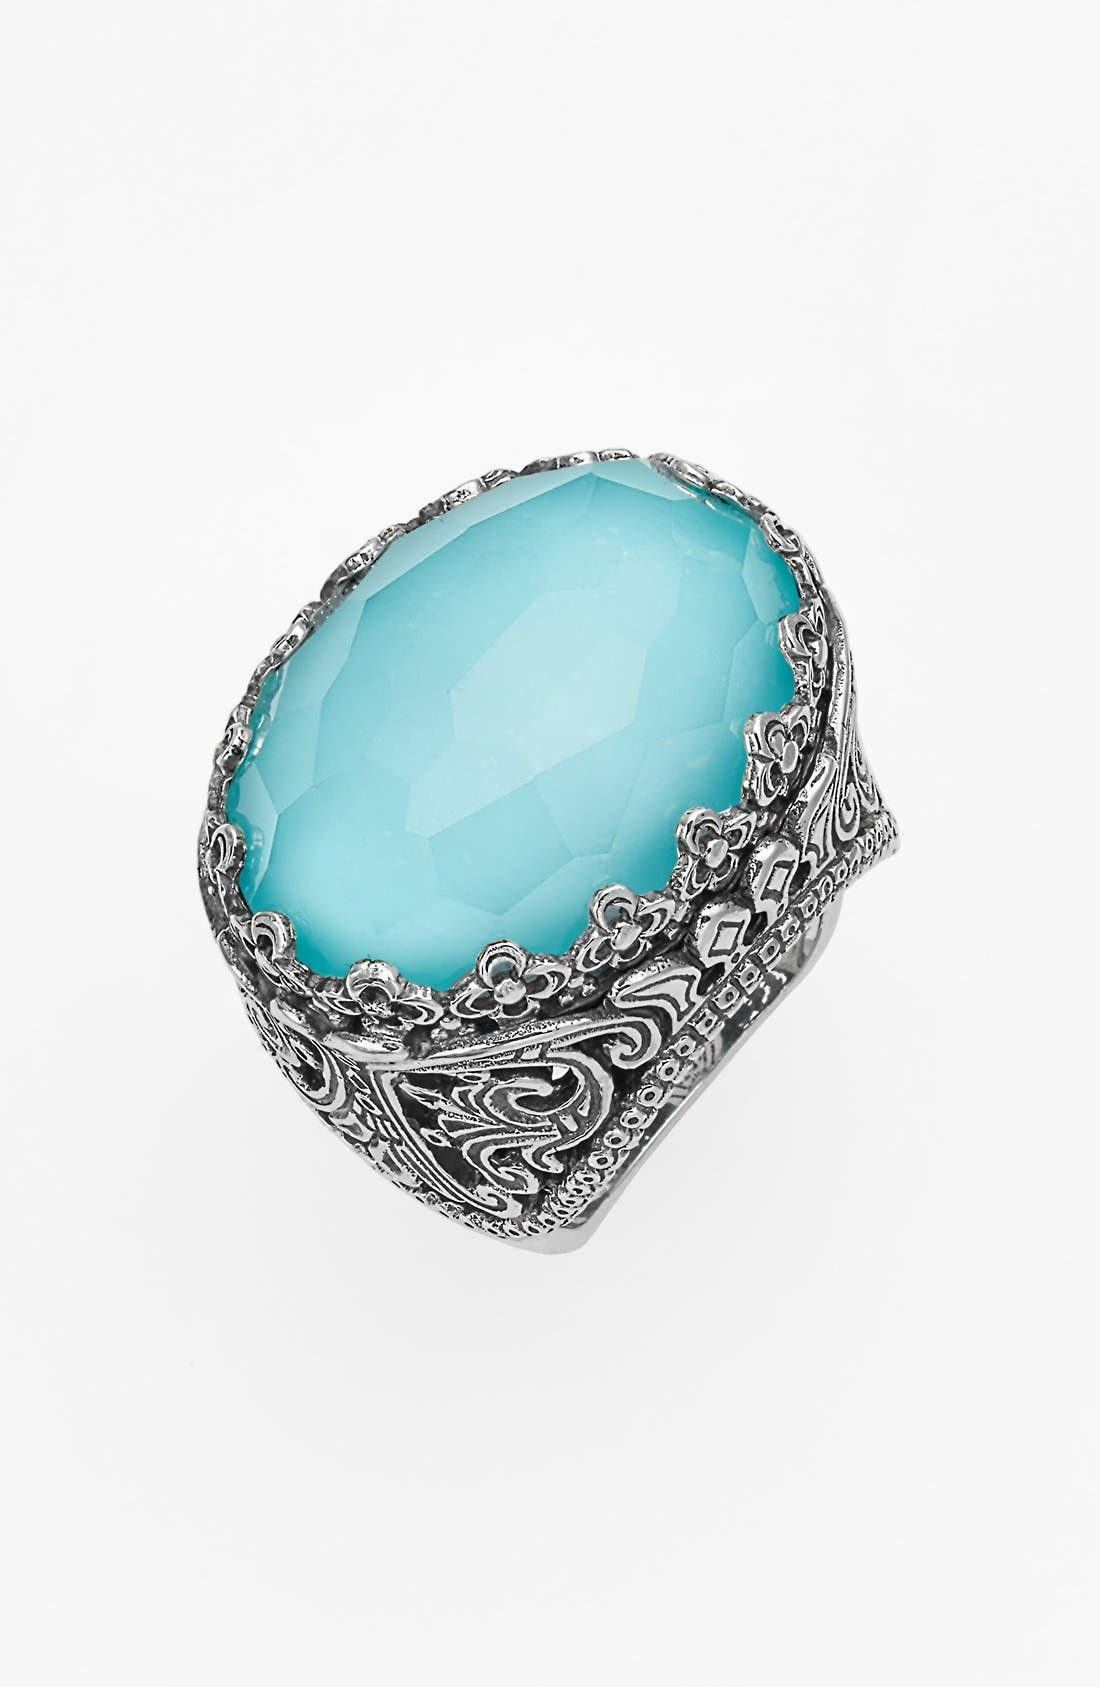 Alternate Image 1 Selected - Konstantino 'Aegean' Oval Stone Ring